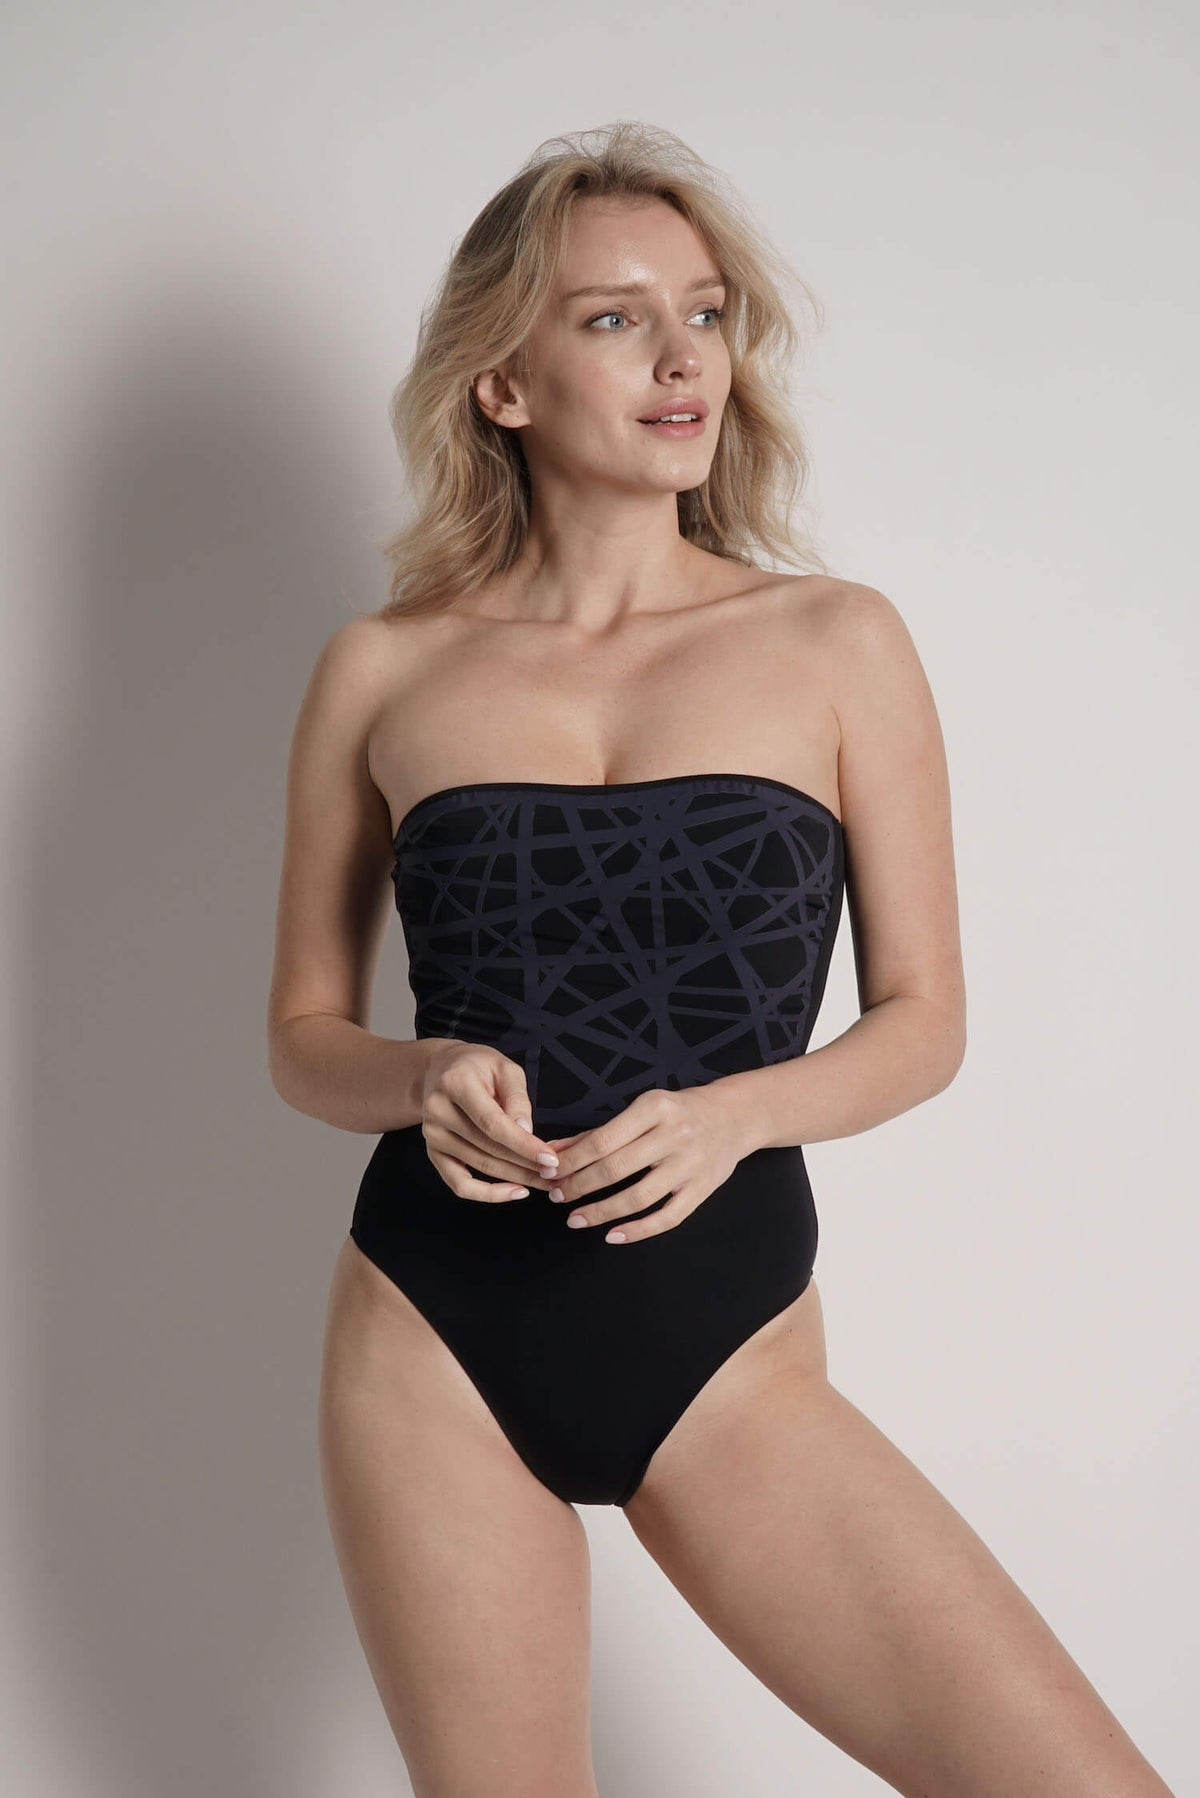 Model wears Angela one piece swimsuit in black with navy laser details.